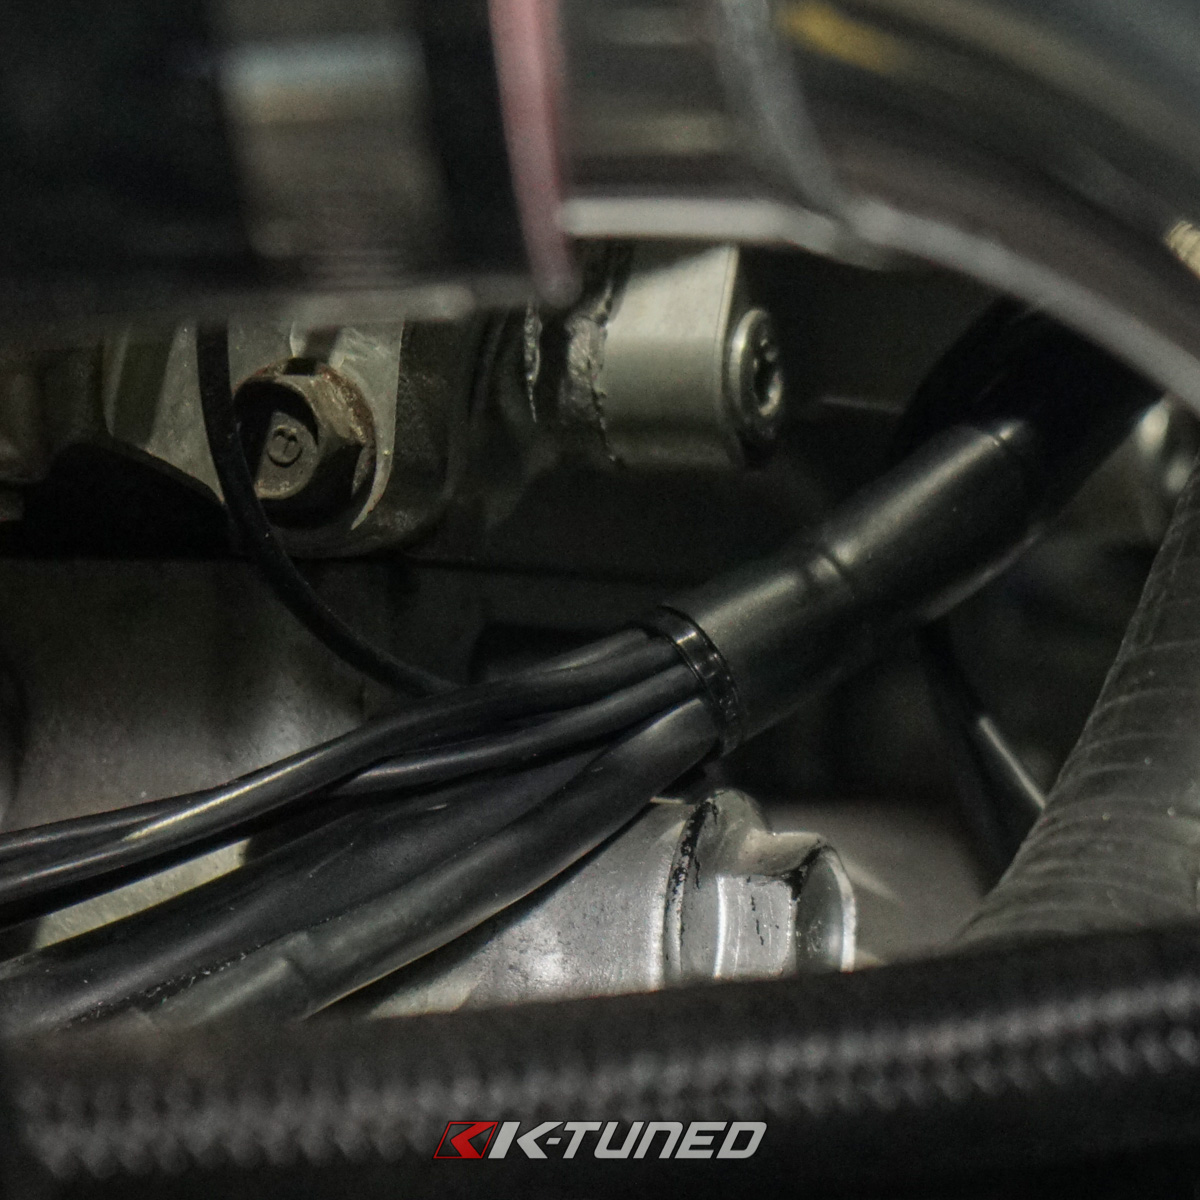 K-Series Tucked Engine Harness on computer wire harness, blower motor wire harness, steering wheel wire harness, steering column wire harness, fuel pump wire harness, egr valve wire harness, fuel tank wire harness, throttle body wire harness, spark plug wire harness, ignition switch wire harness, air conditioner wire harness, power steering pump wire harness, engine wire harness, seat belt wire harness, air bag wire harness,